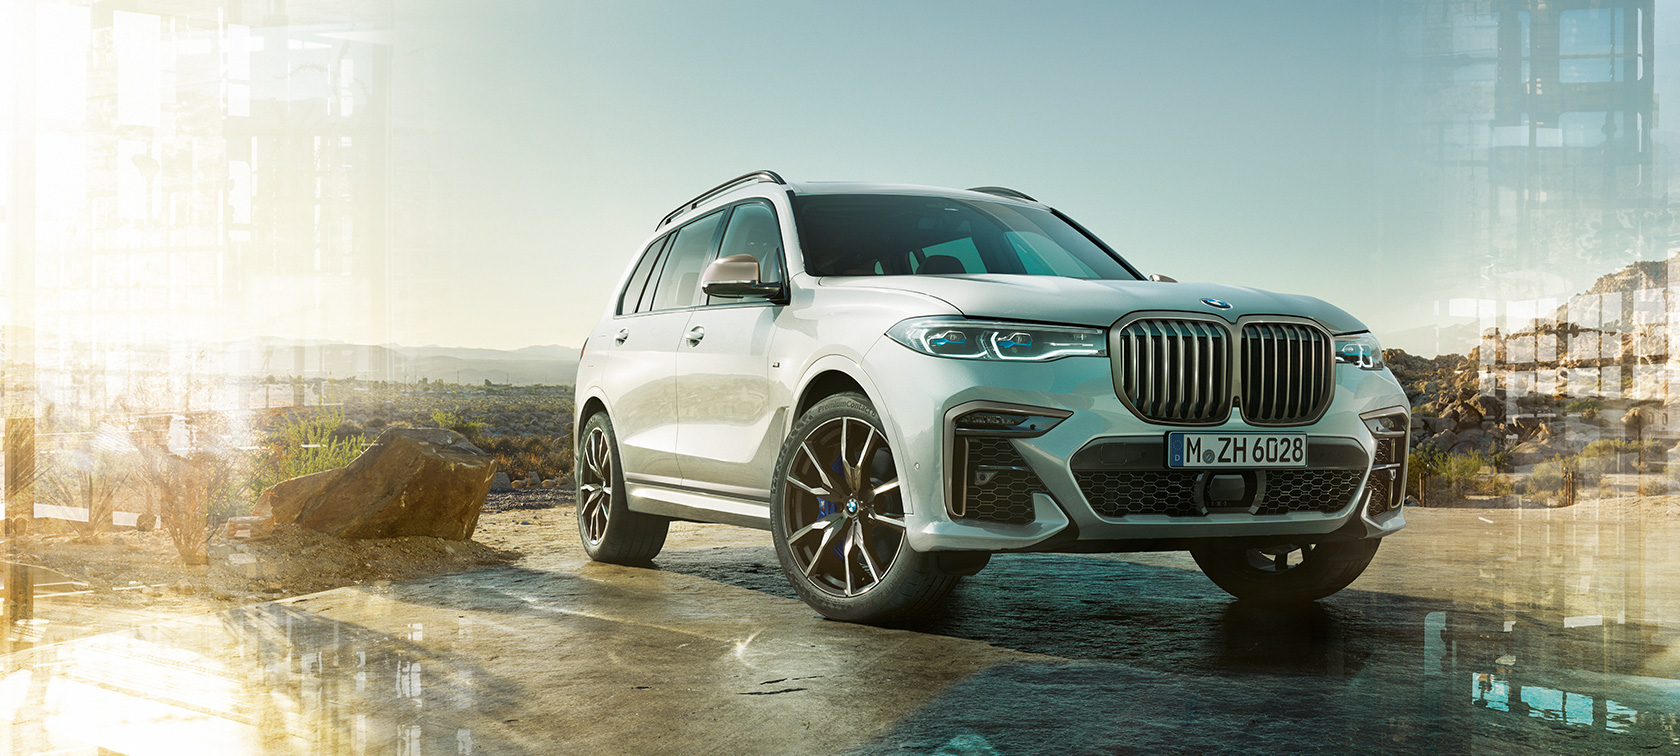 BMW X7 and M50i, technical data